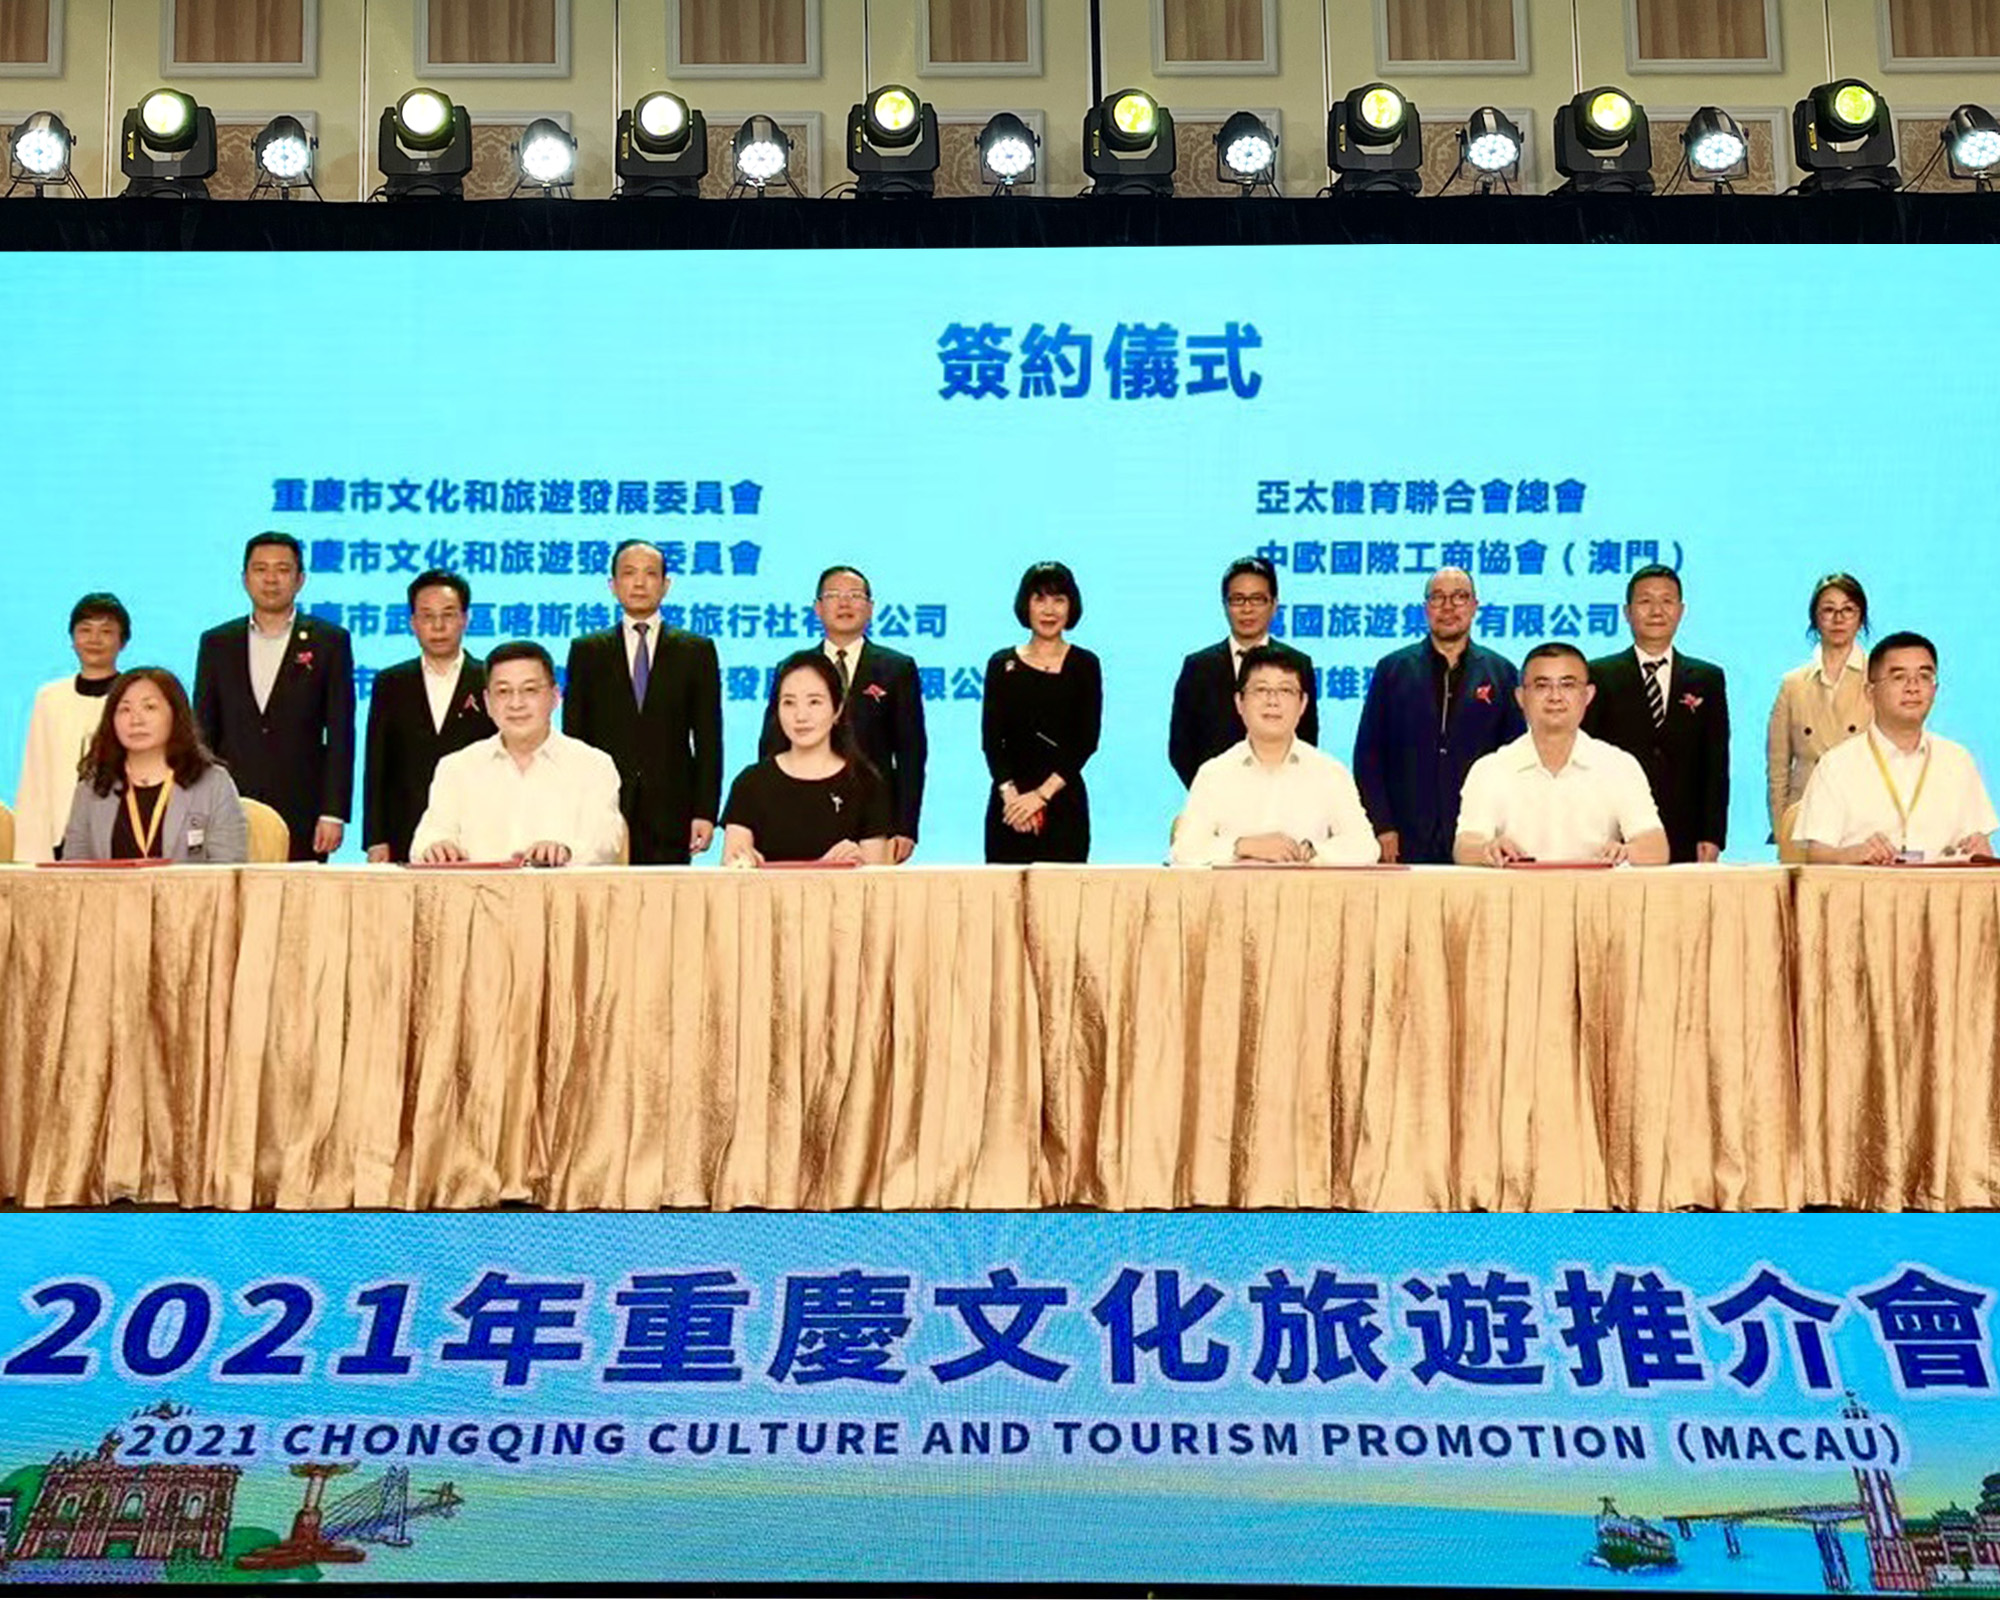 GAAPSF signed cooperative agreement with Chongqing Government